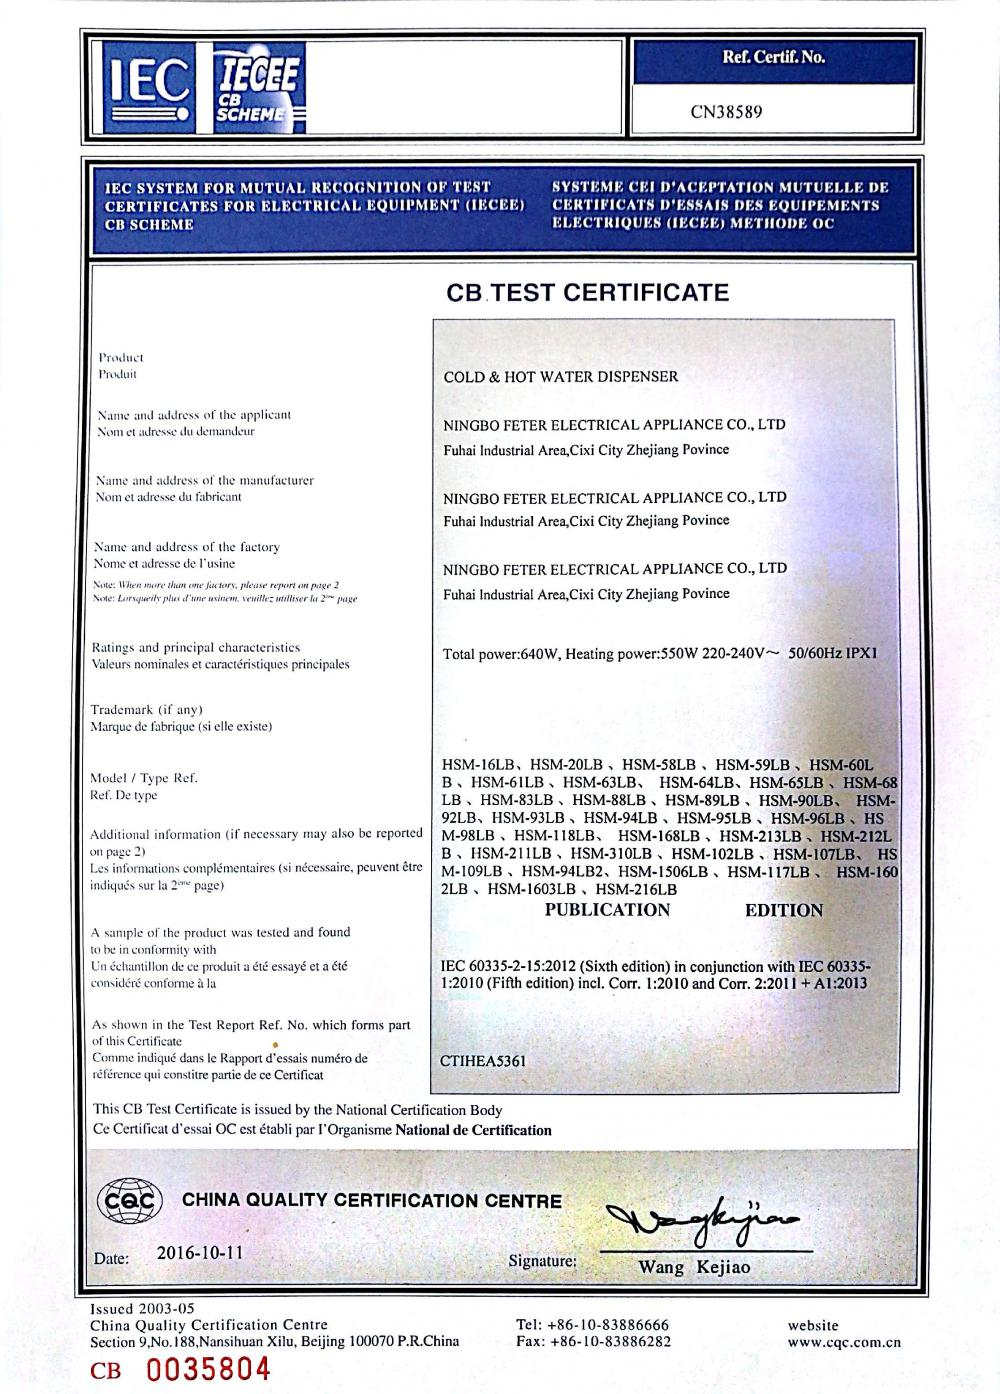 CB certification of LB series